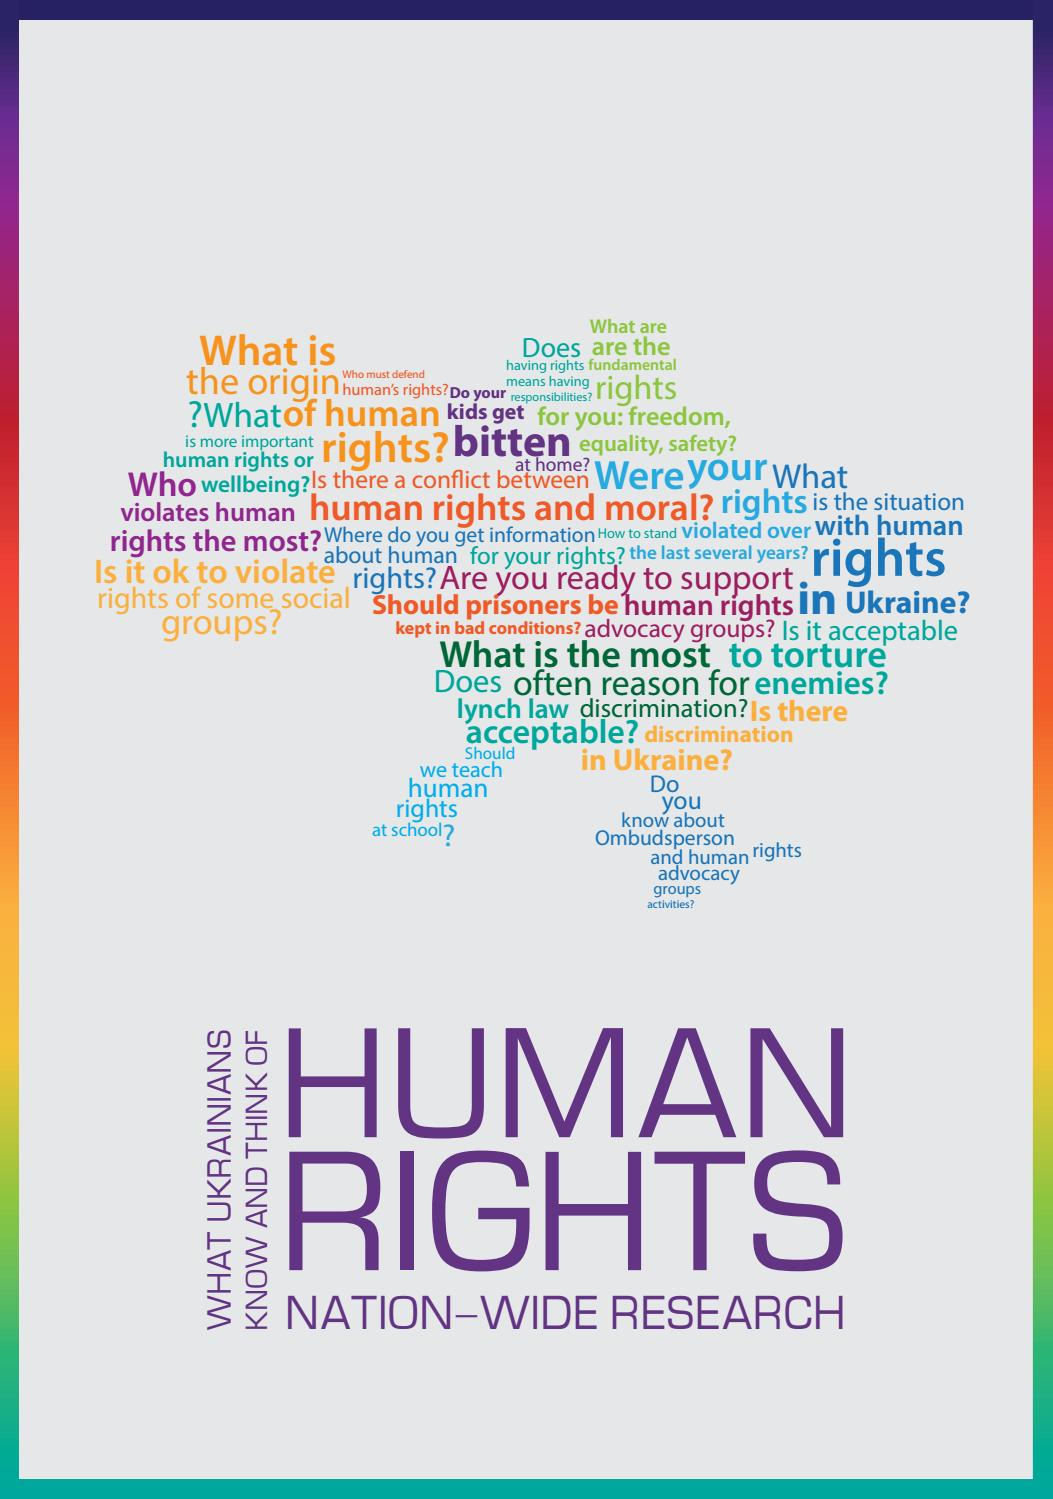 Human rights: nation-wide research by United Nations